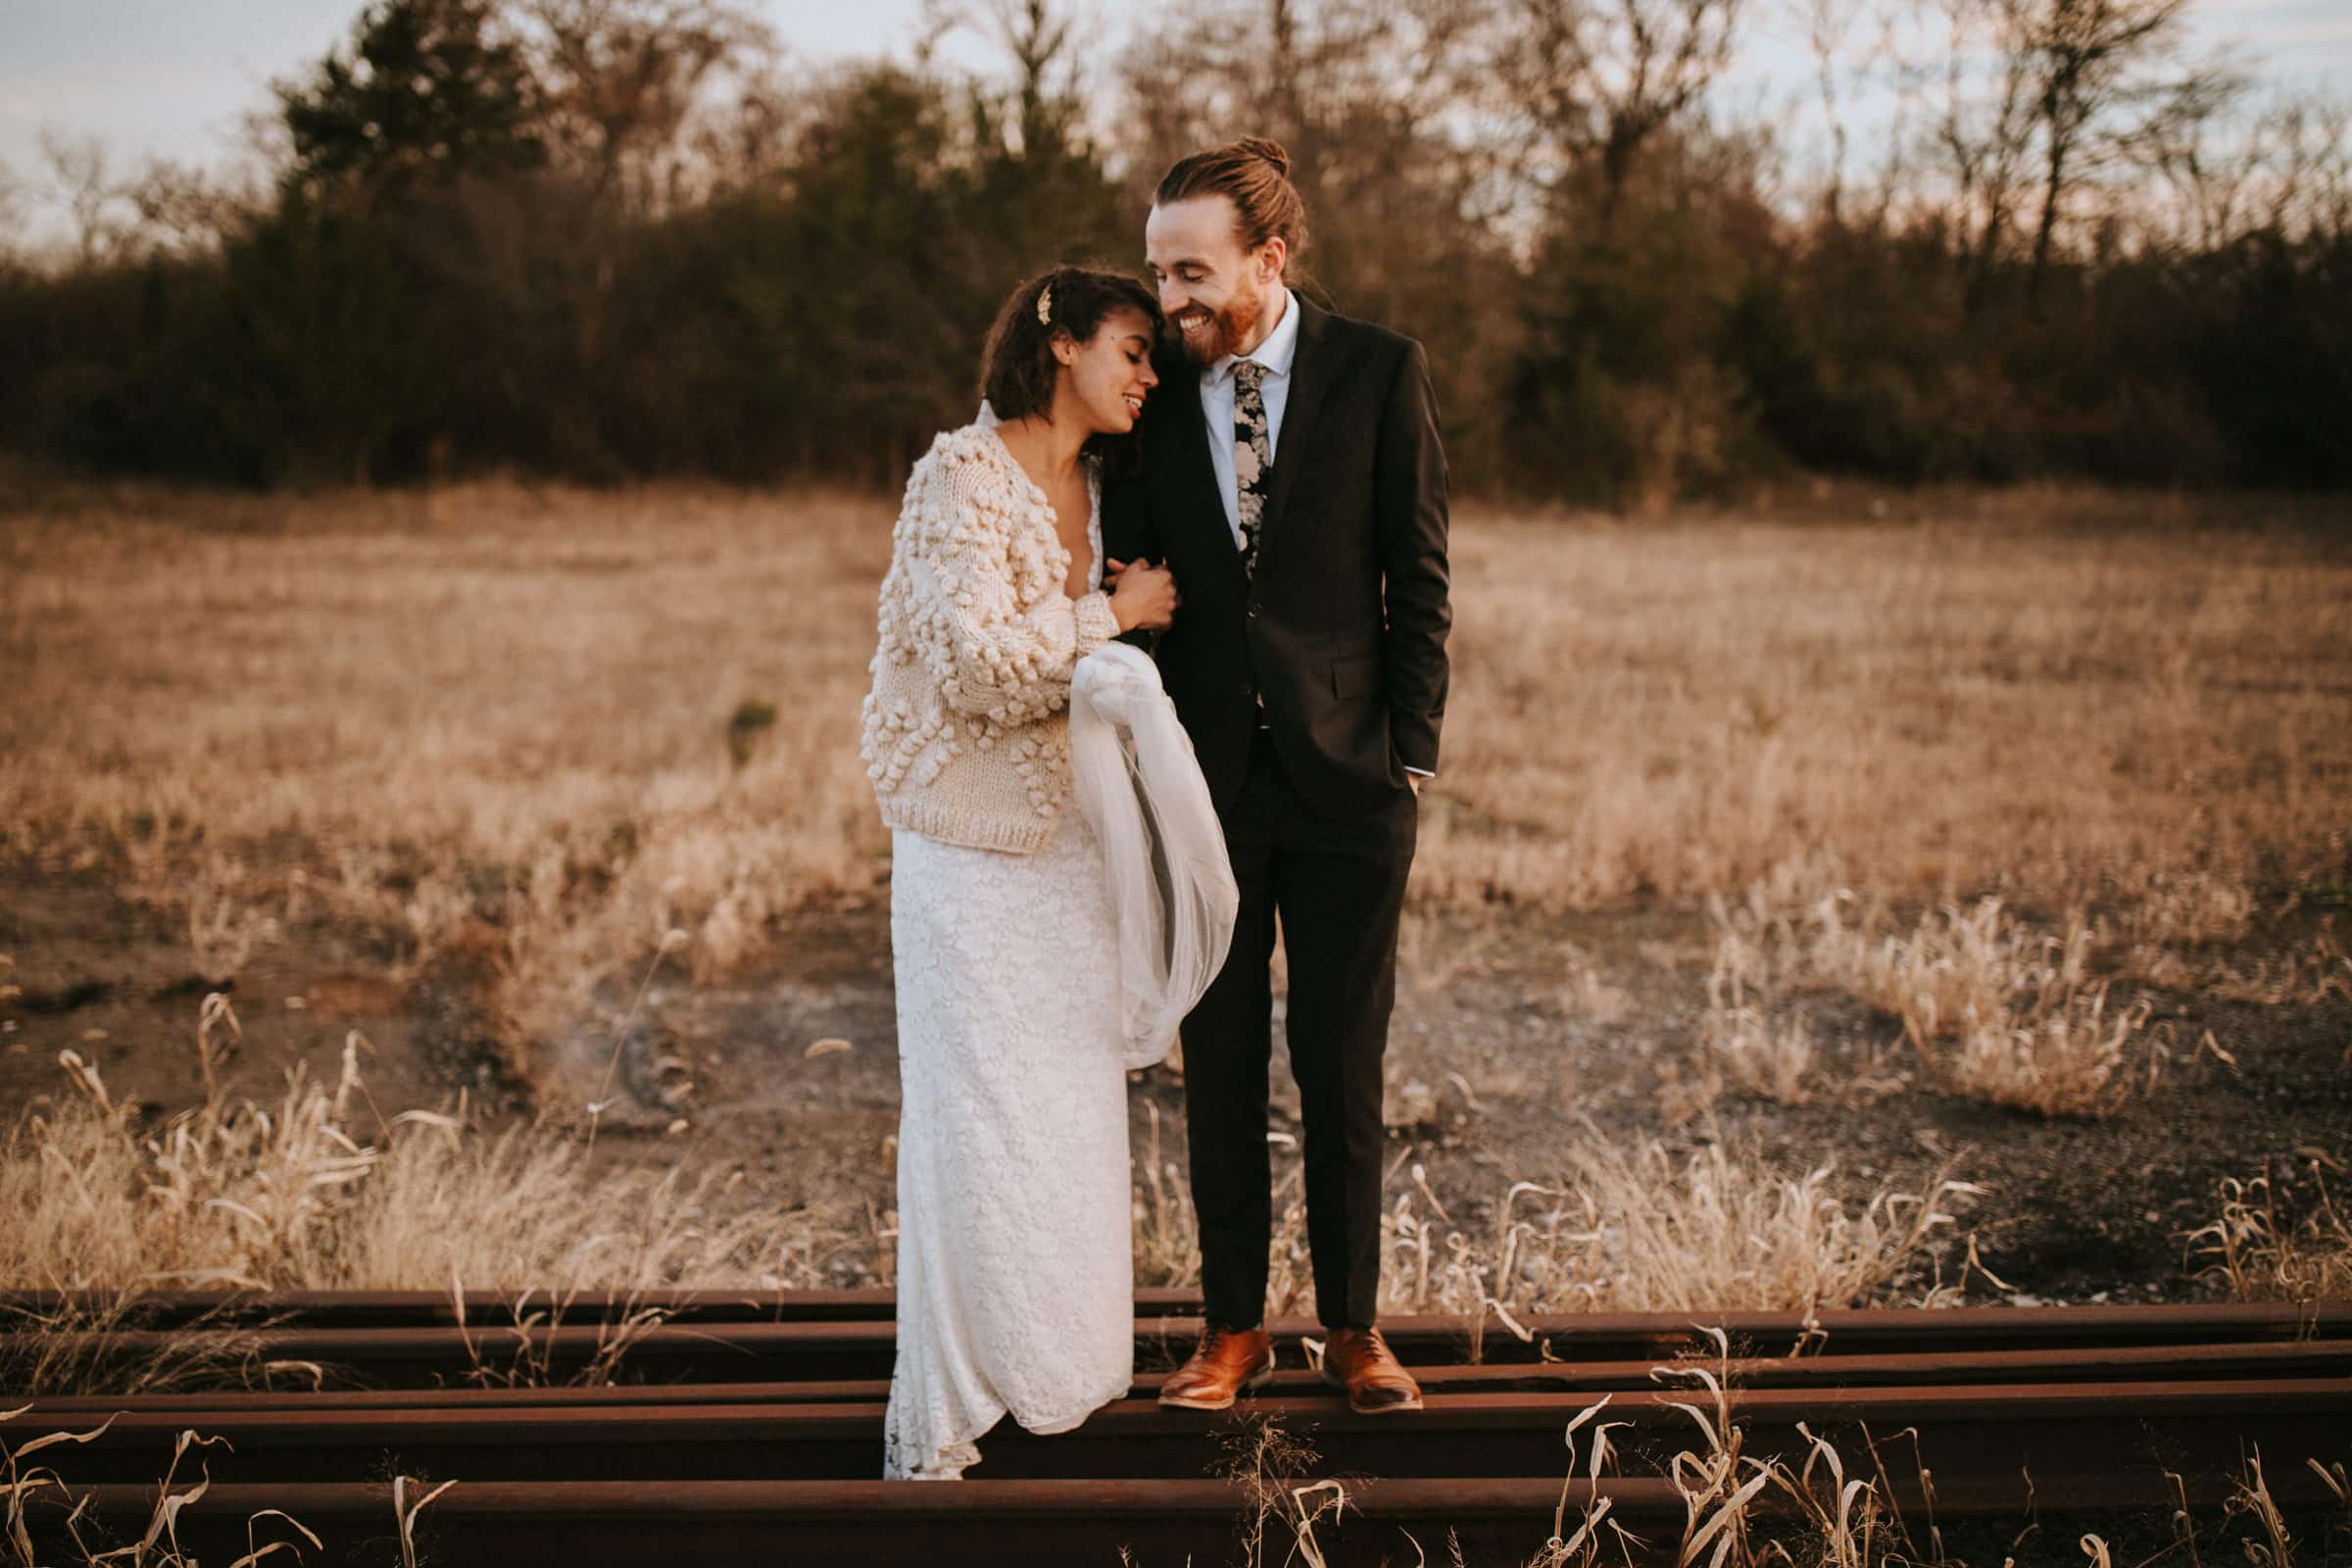 The wedding couple is standing on old tram tracks.